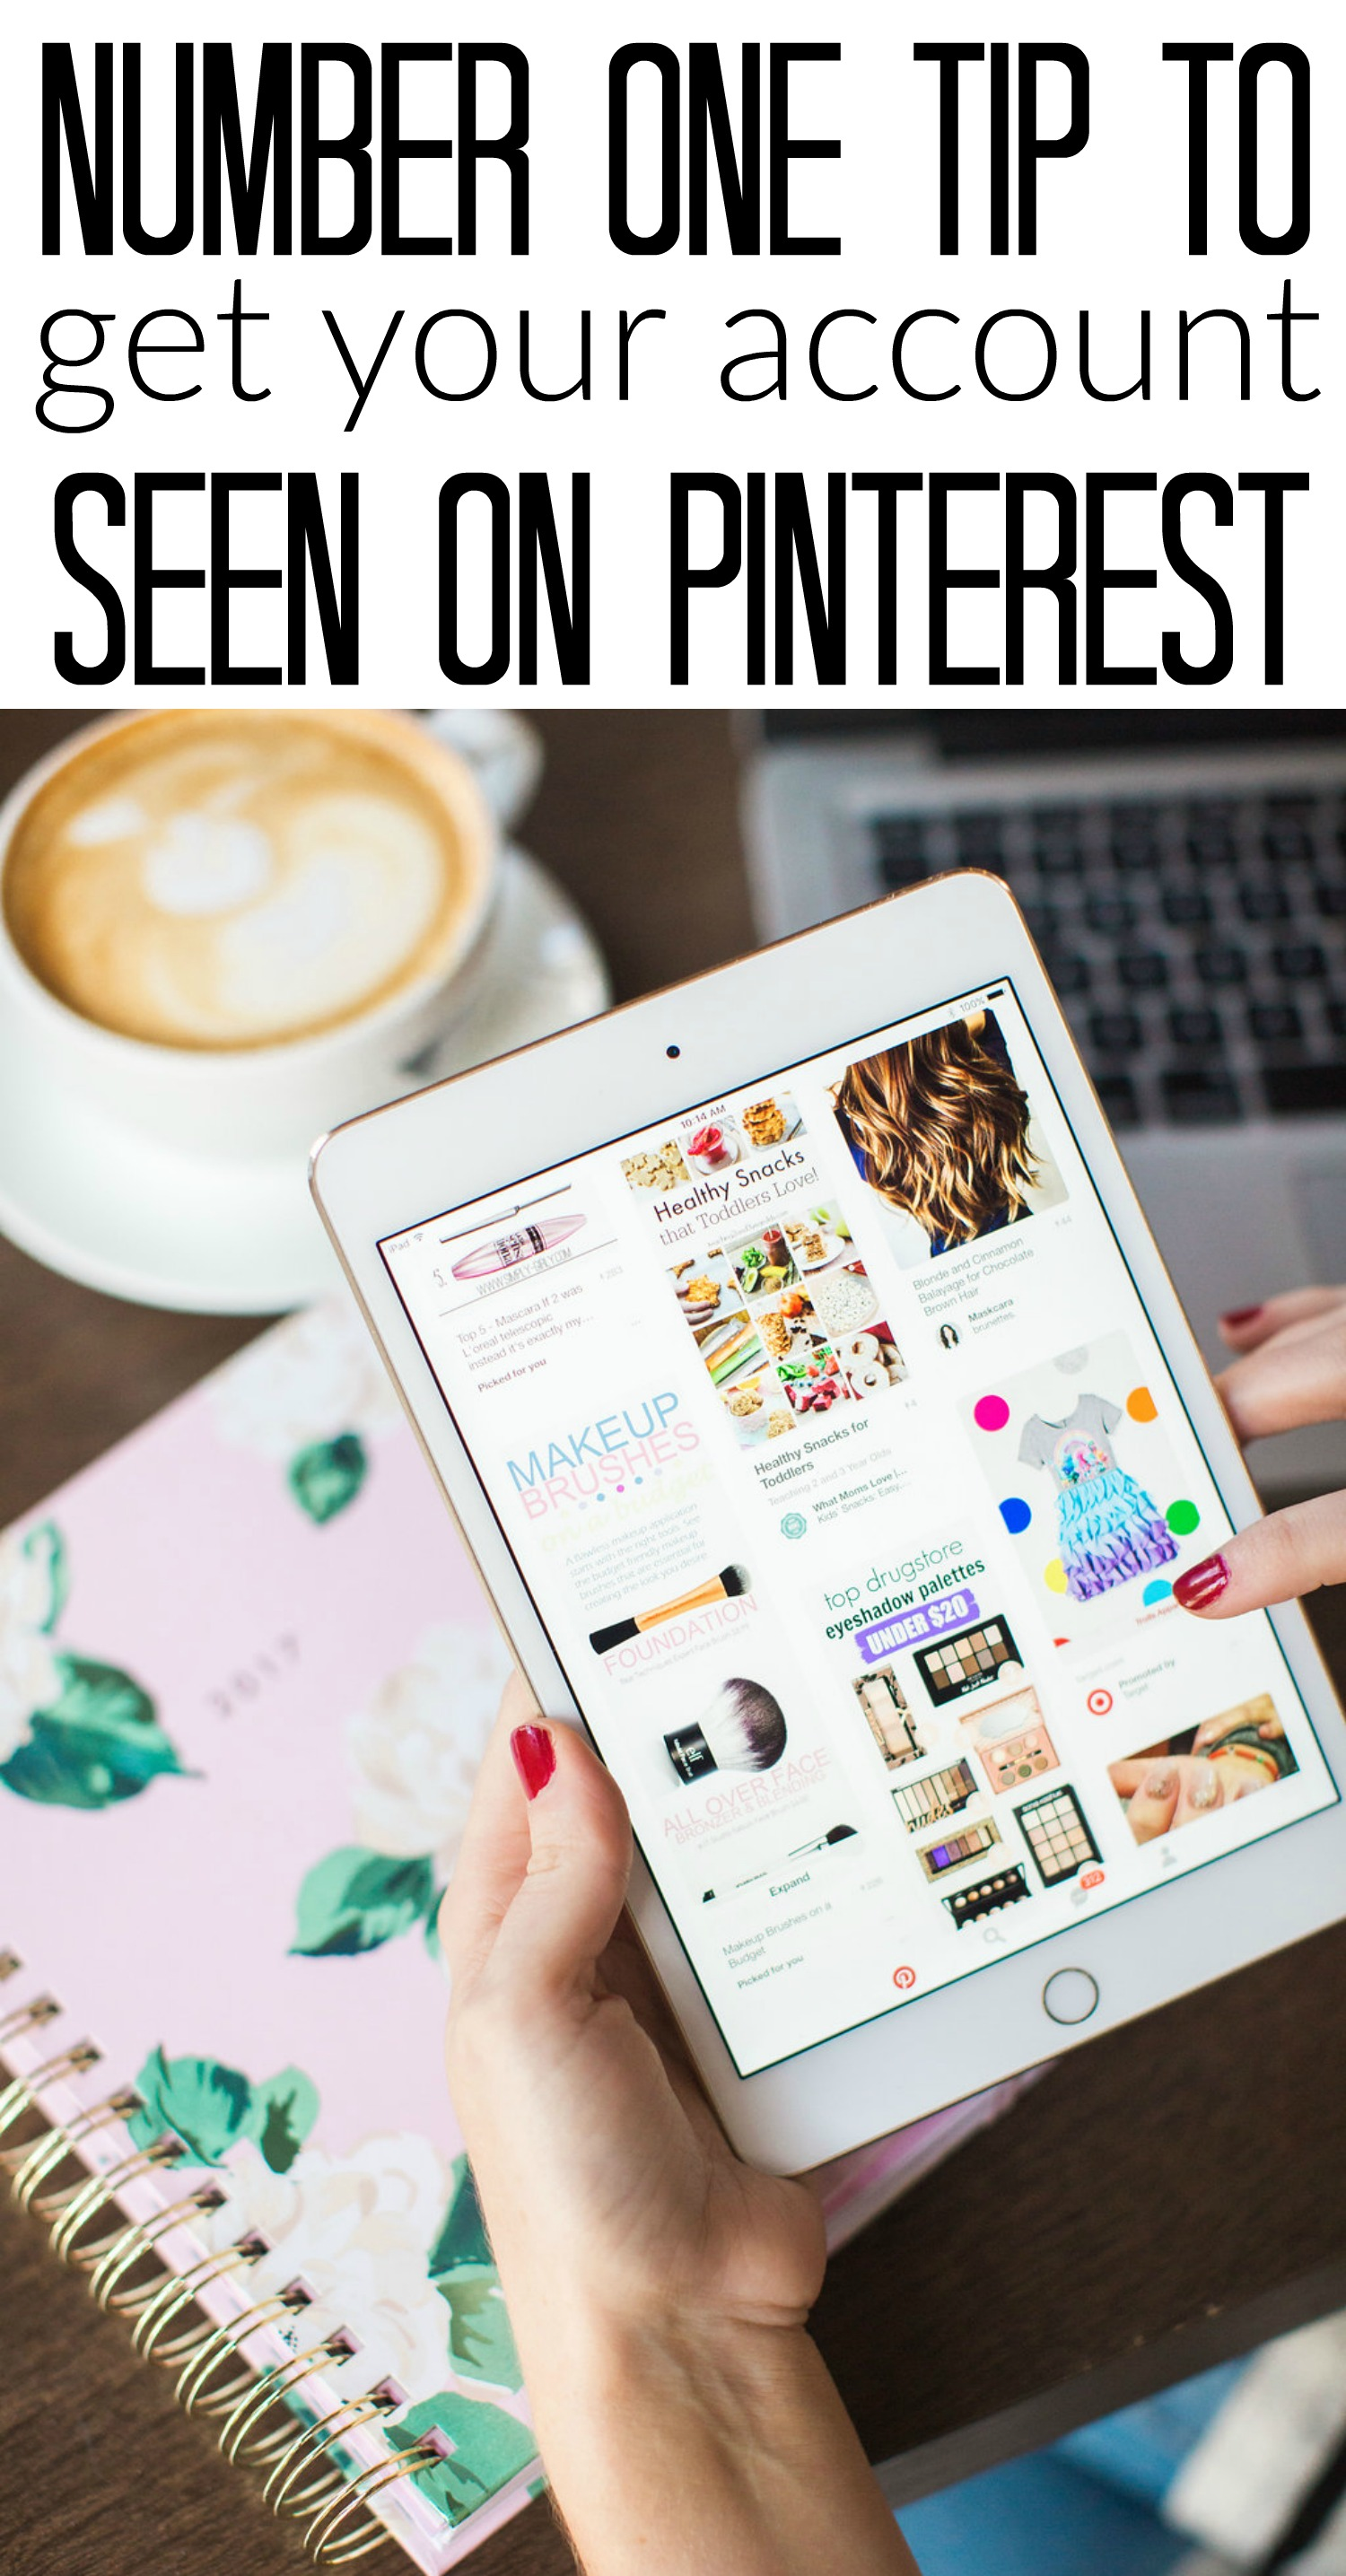 Number One Tip to Get YOUR Account Seen on Pinterest